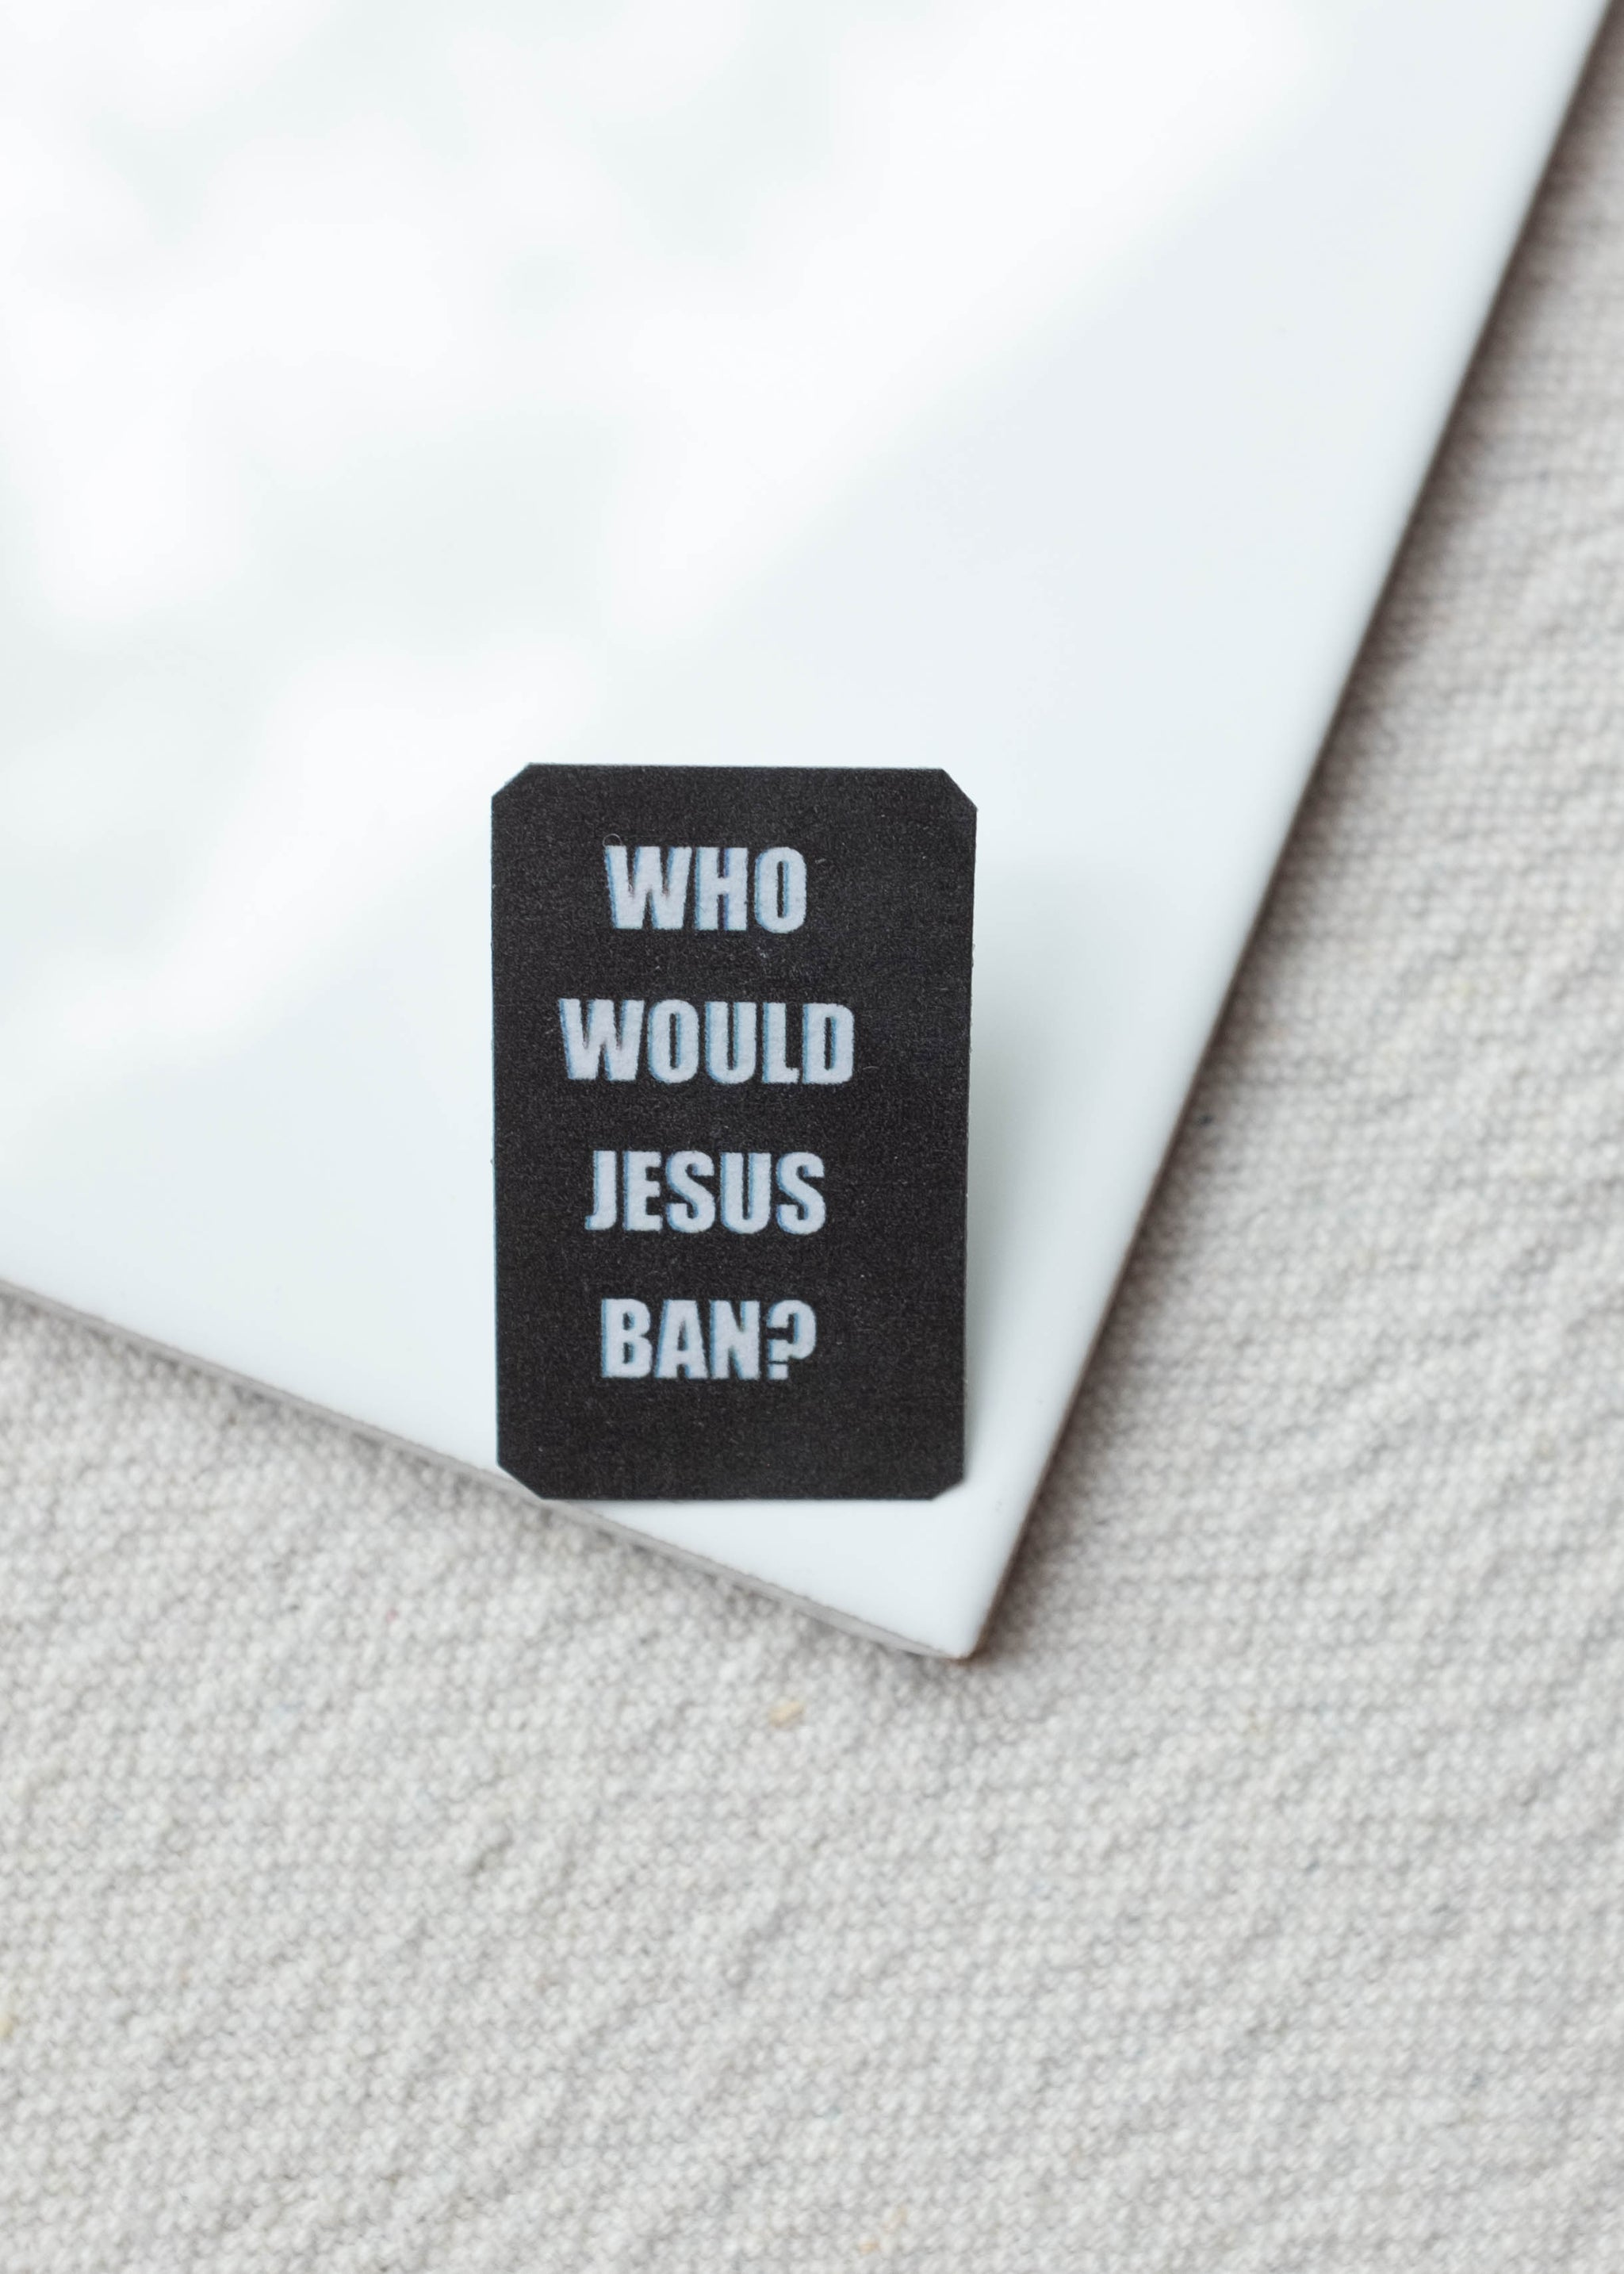 Who would Jesus ban